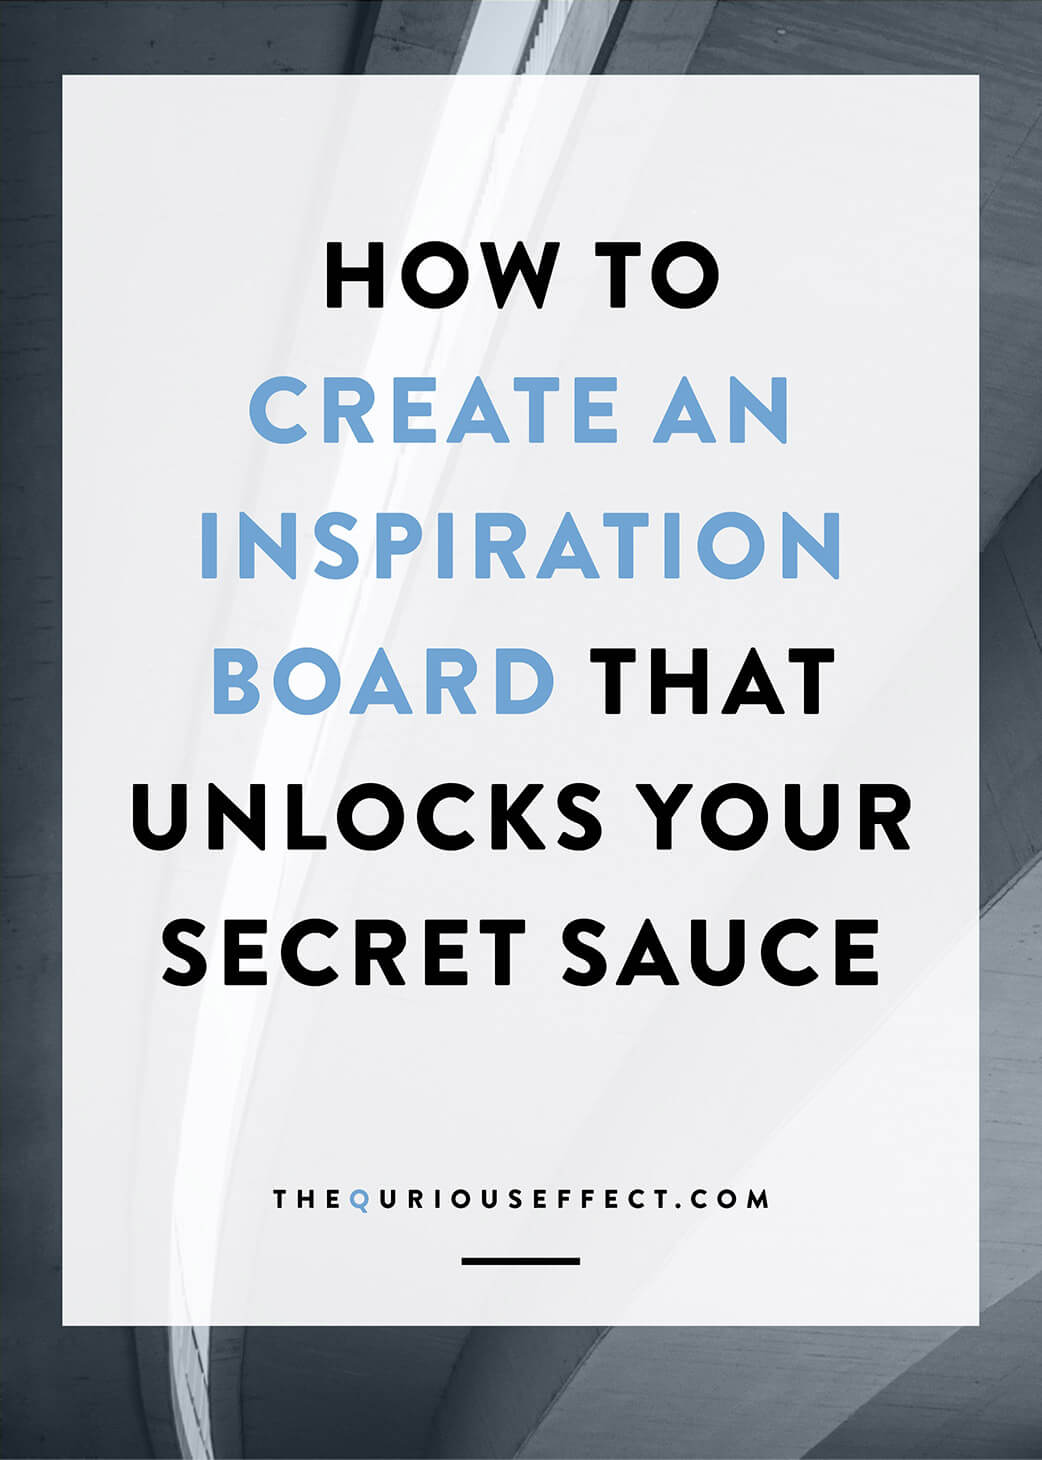 How to create an inspiration board that unlocks your secret sauce by The Qurious Effect, a brand and Squarespace web design studio.